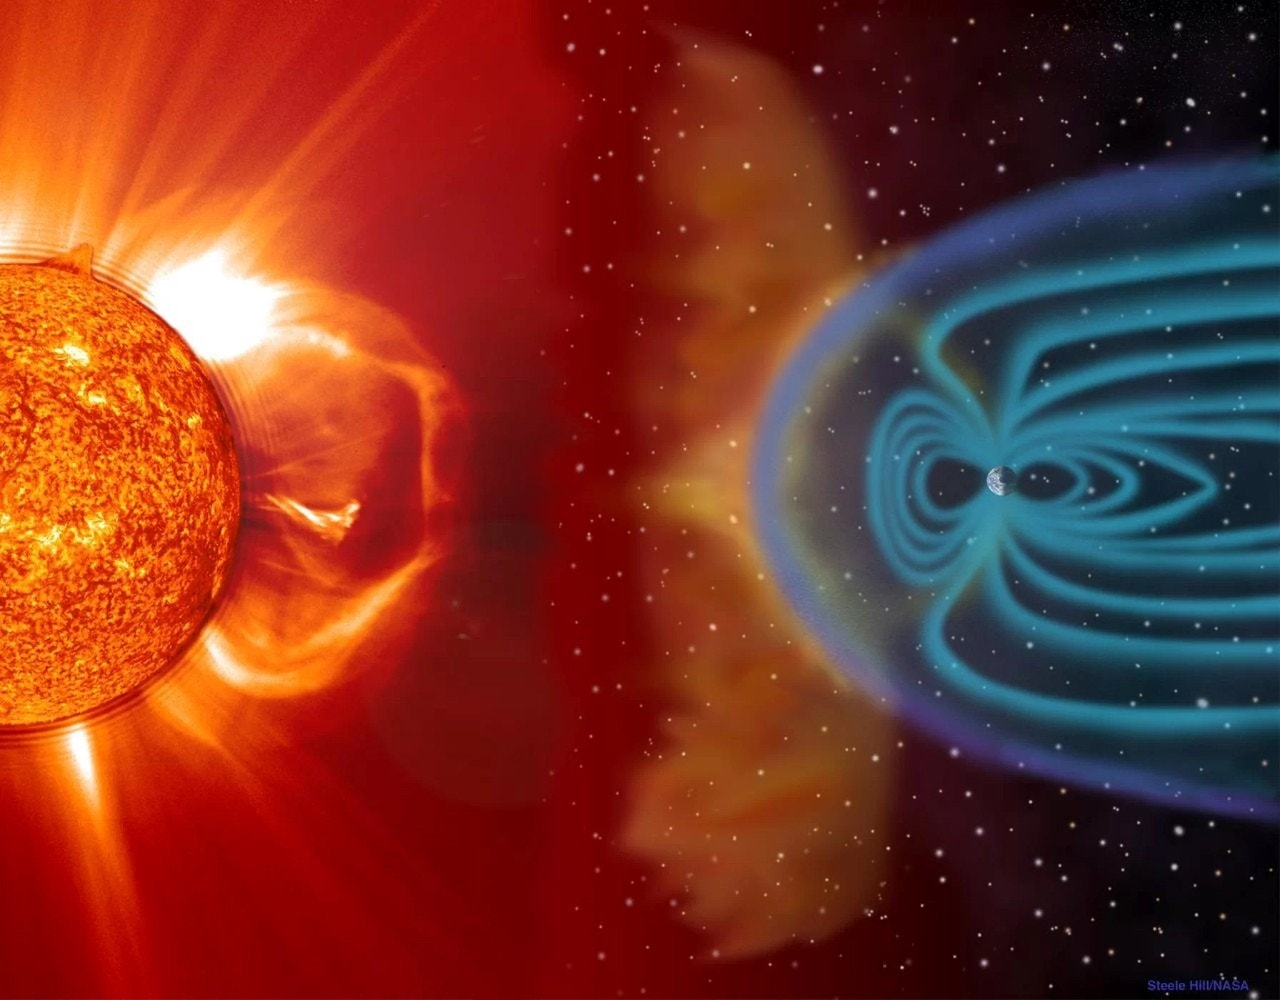 Earth's magnetic field is a ruthless, solar-wind-shredding machine